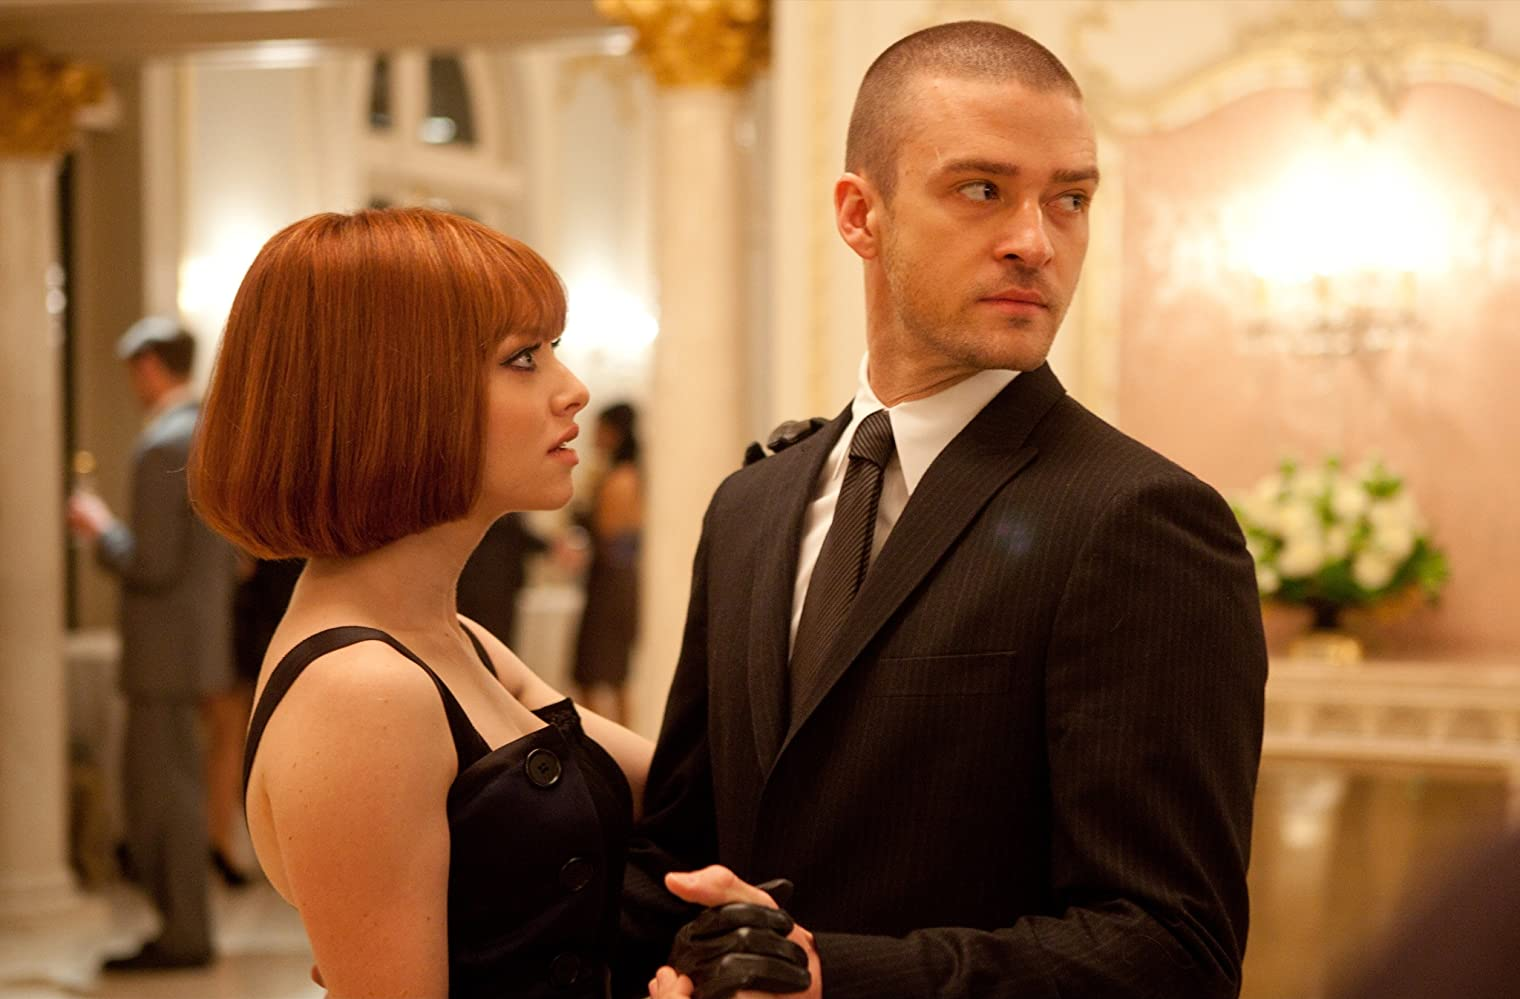 Justin Timberlake and Amanda Seyfried in In Time (2011)